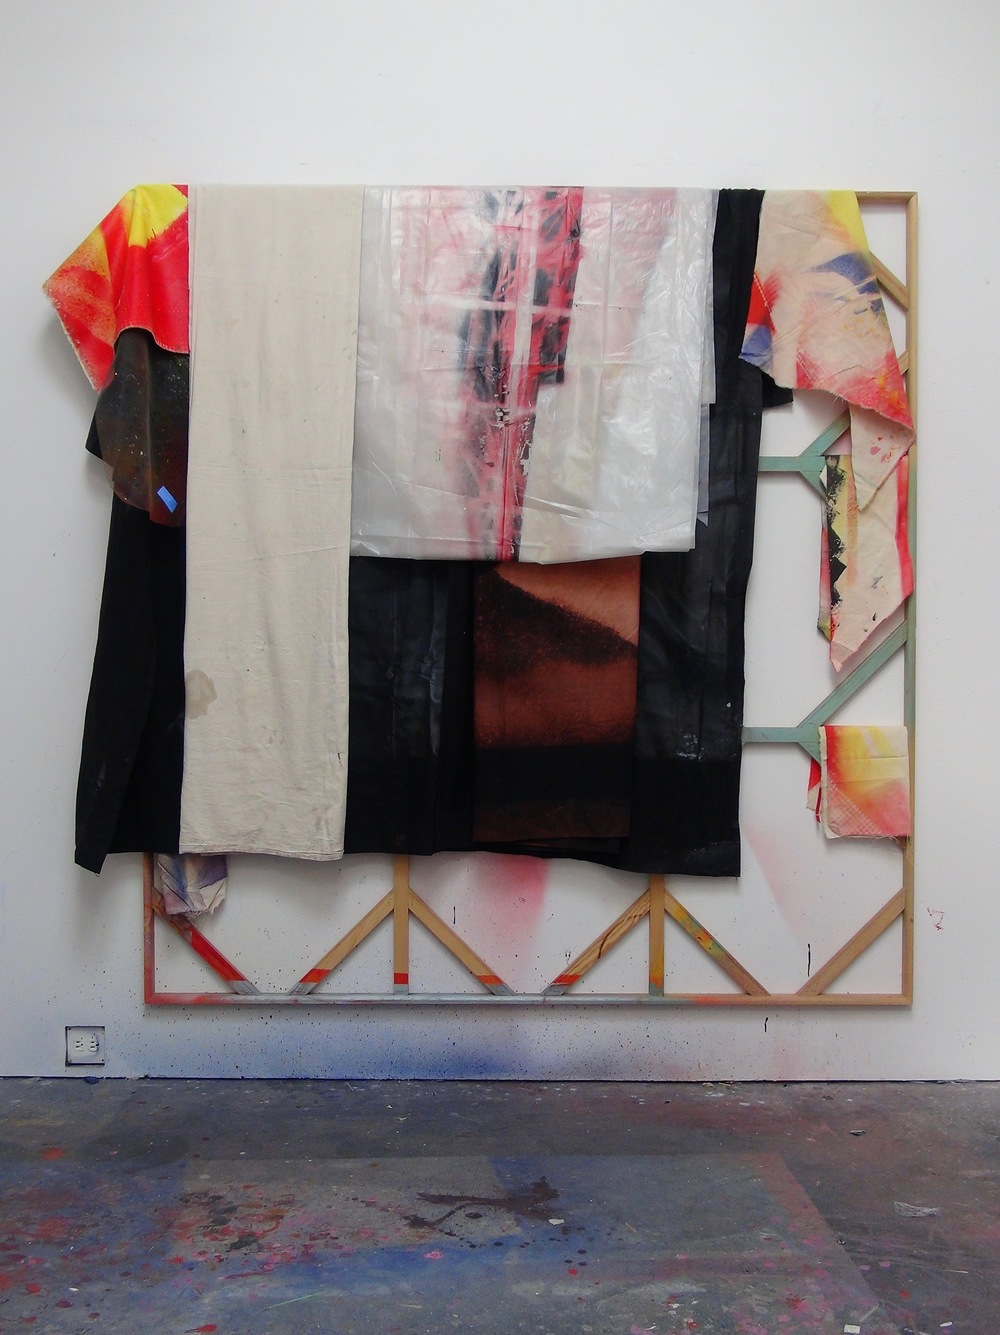 IAIN MUIRHEAD   1604  , 2016. Airborne pigment, acrylic binder, 10oz cotton duck canvas, gesso, nylon screen, black fabric bedsheet, bleach, dye, 4mil polyethylene sheeting, readymade poplar stretcher. 84 x 90 inches.